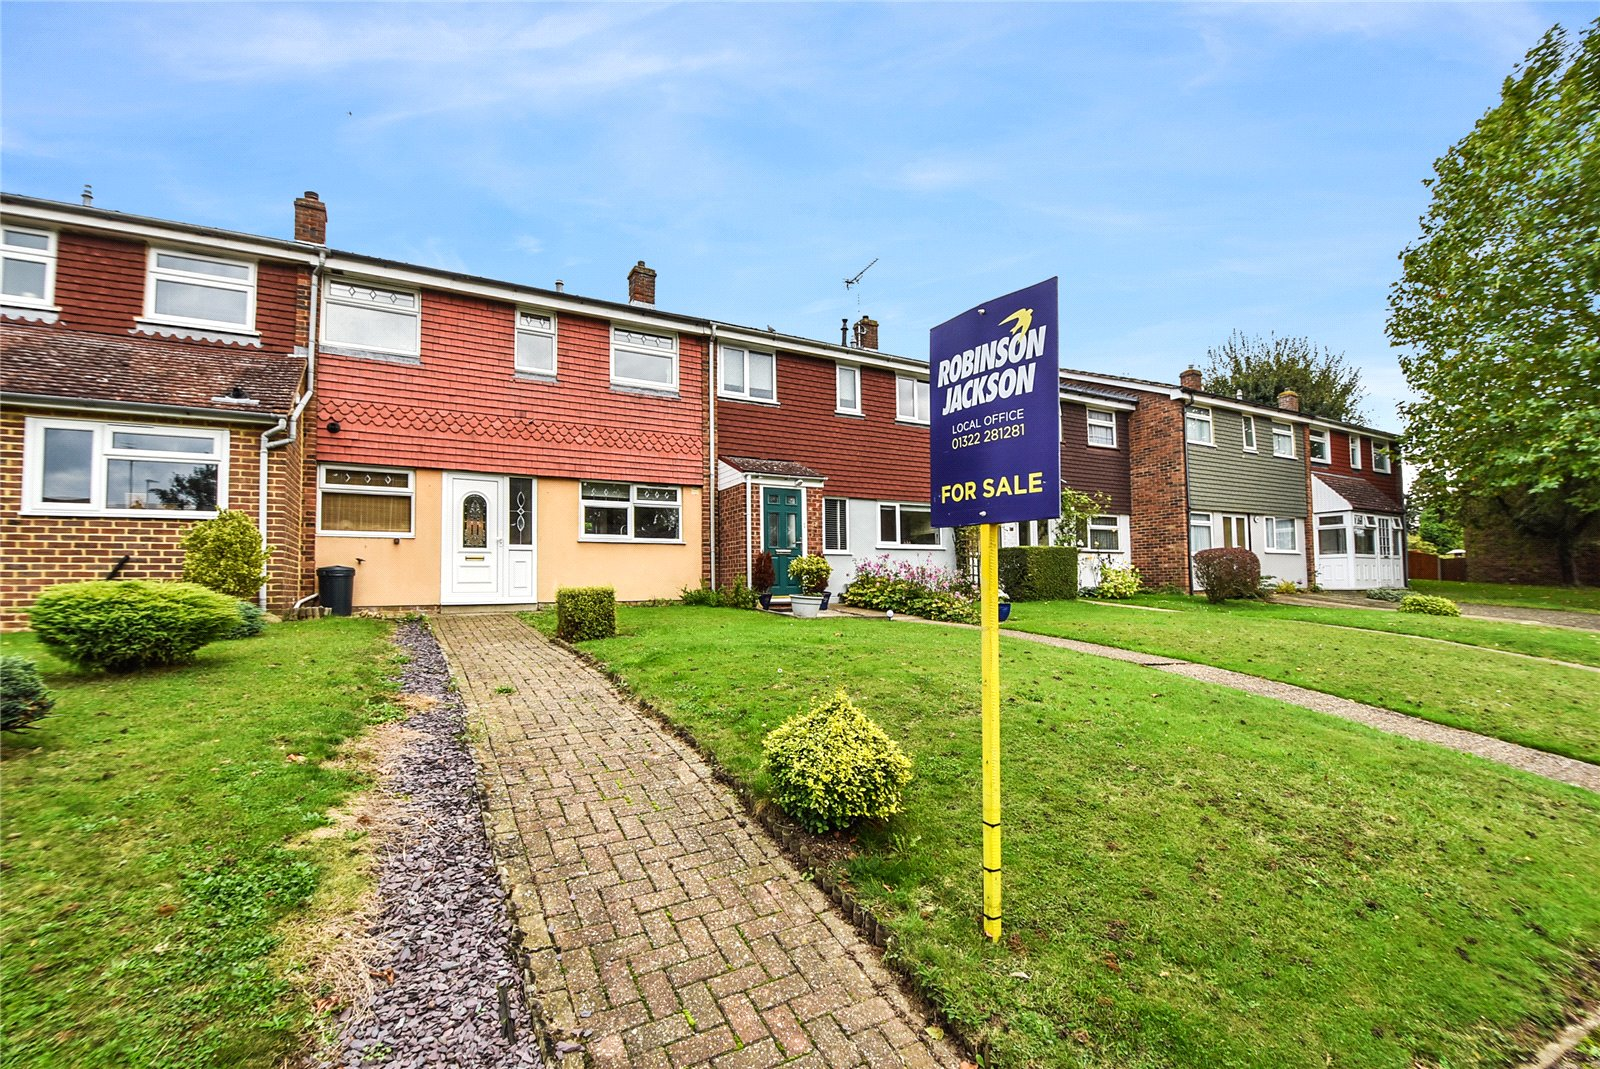 Paddock Close, South Darenth, Dartford, Kent, DA4